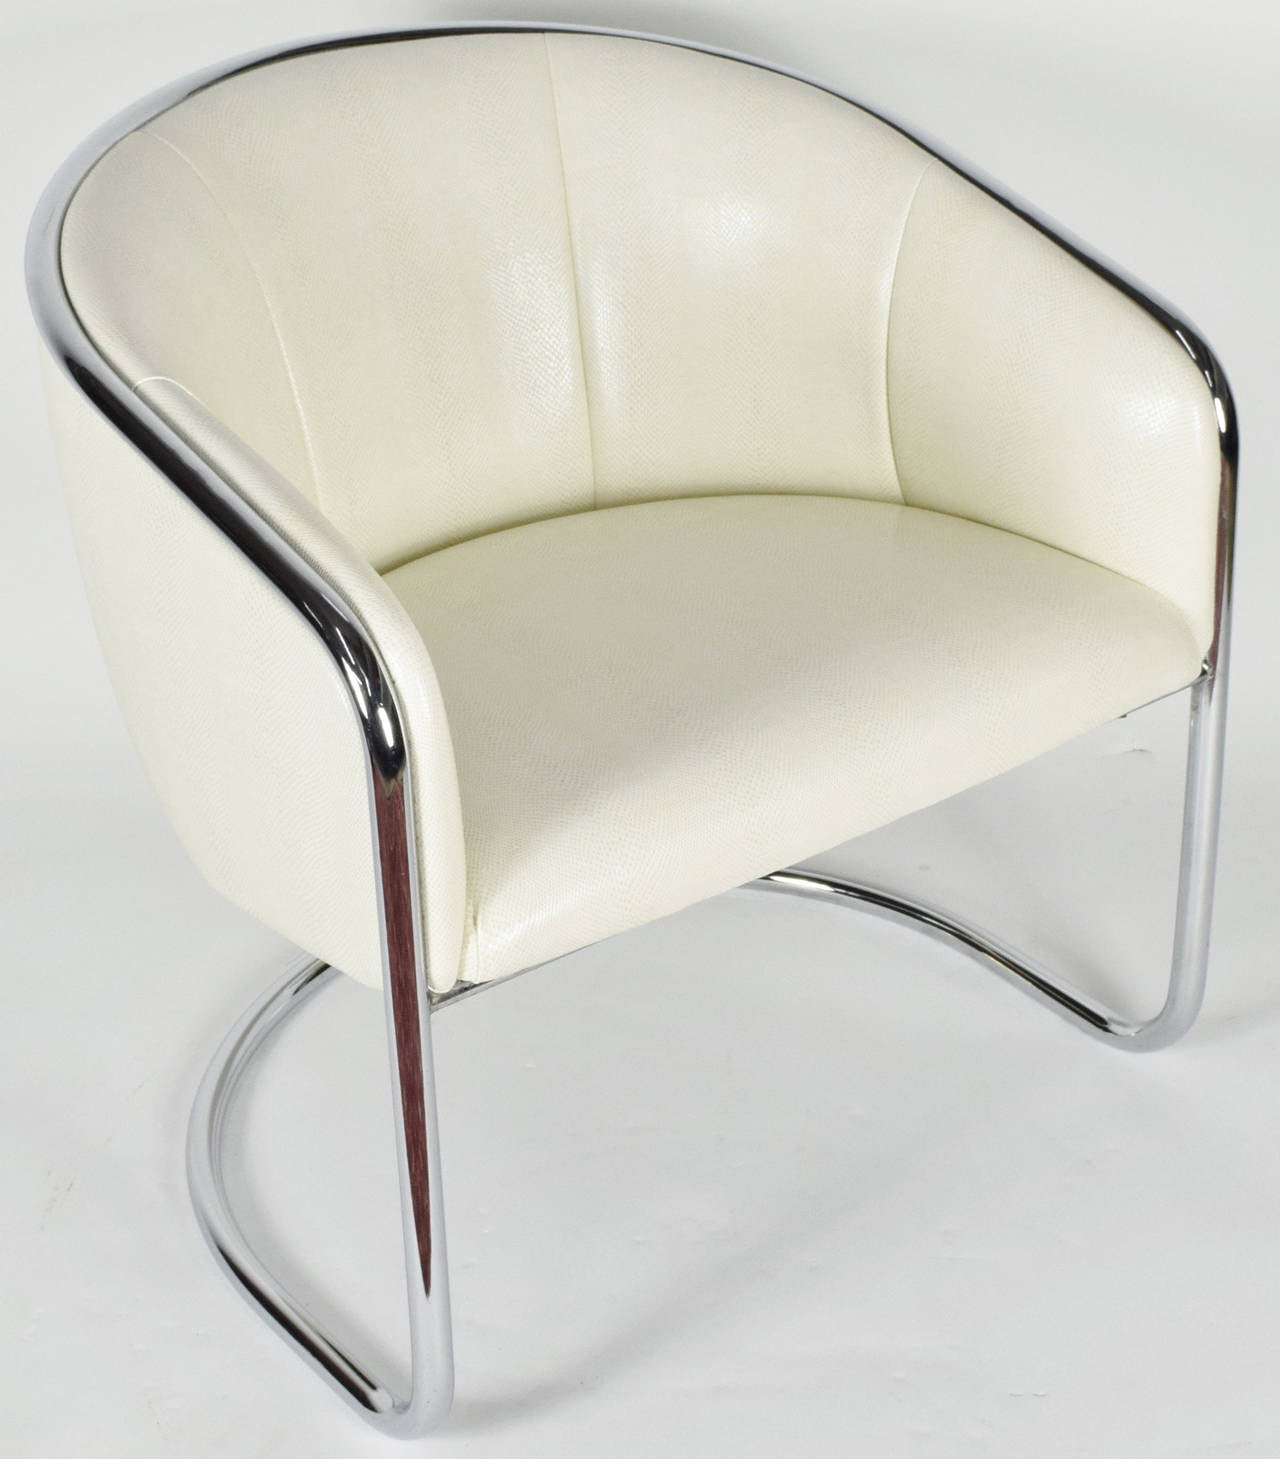 This is a beautifully restored chair by Thonet. New upholstery and cushioning. In a faux snakeskin print.